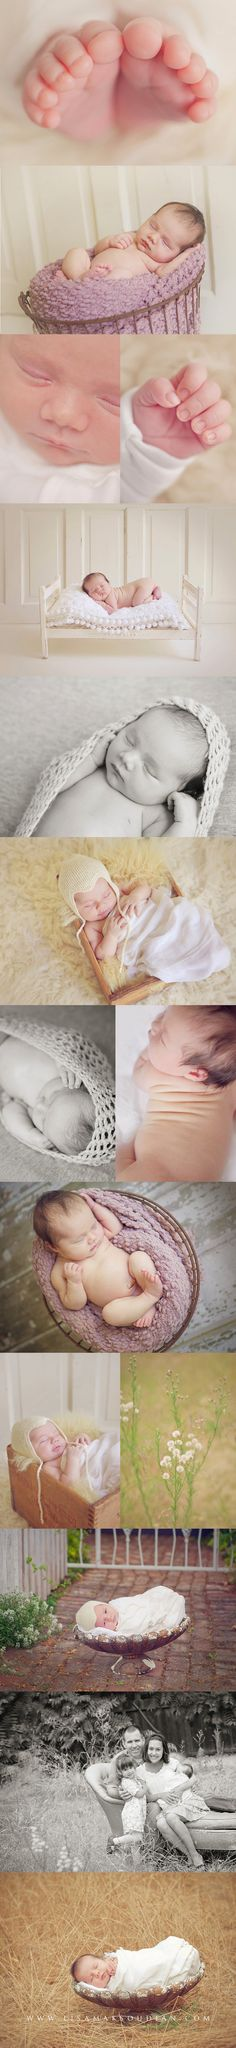 Ideas for baby shoot